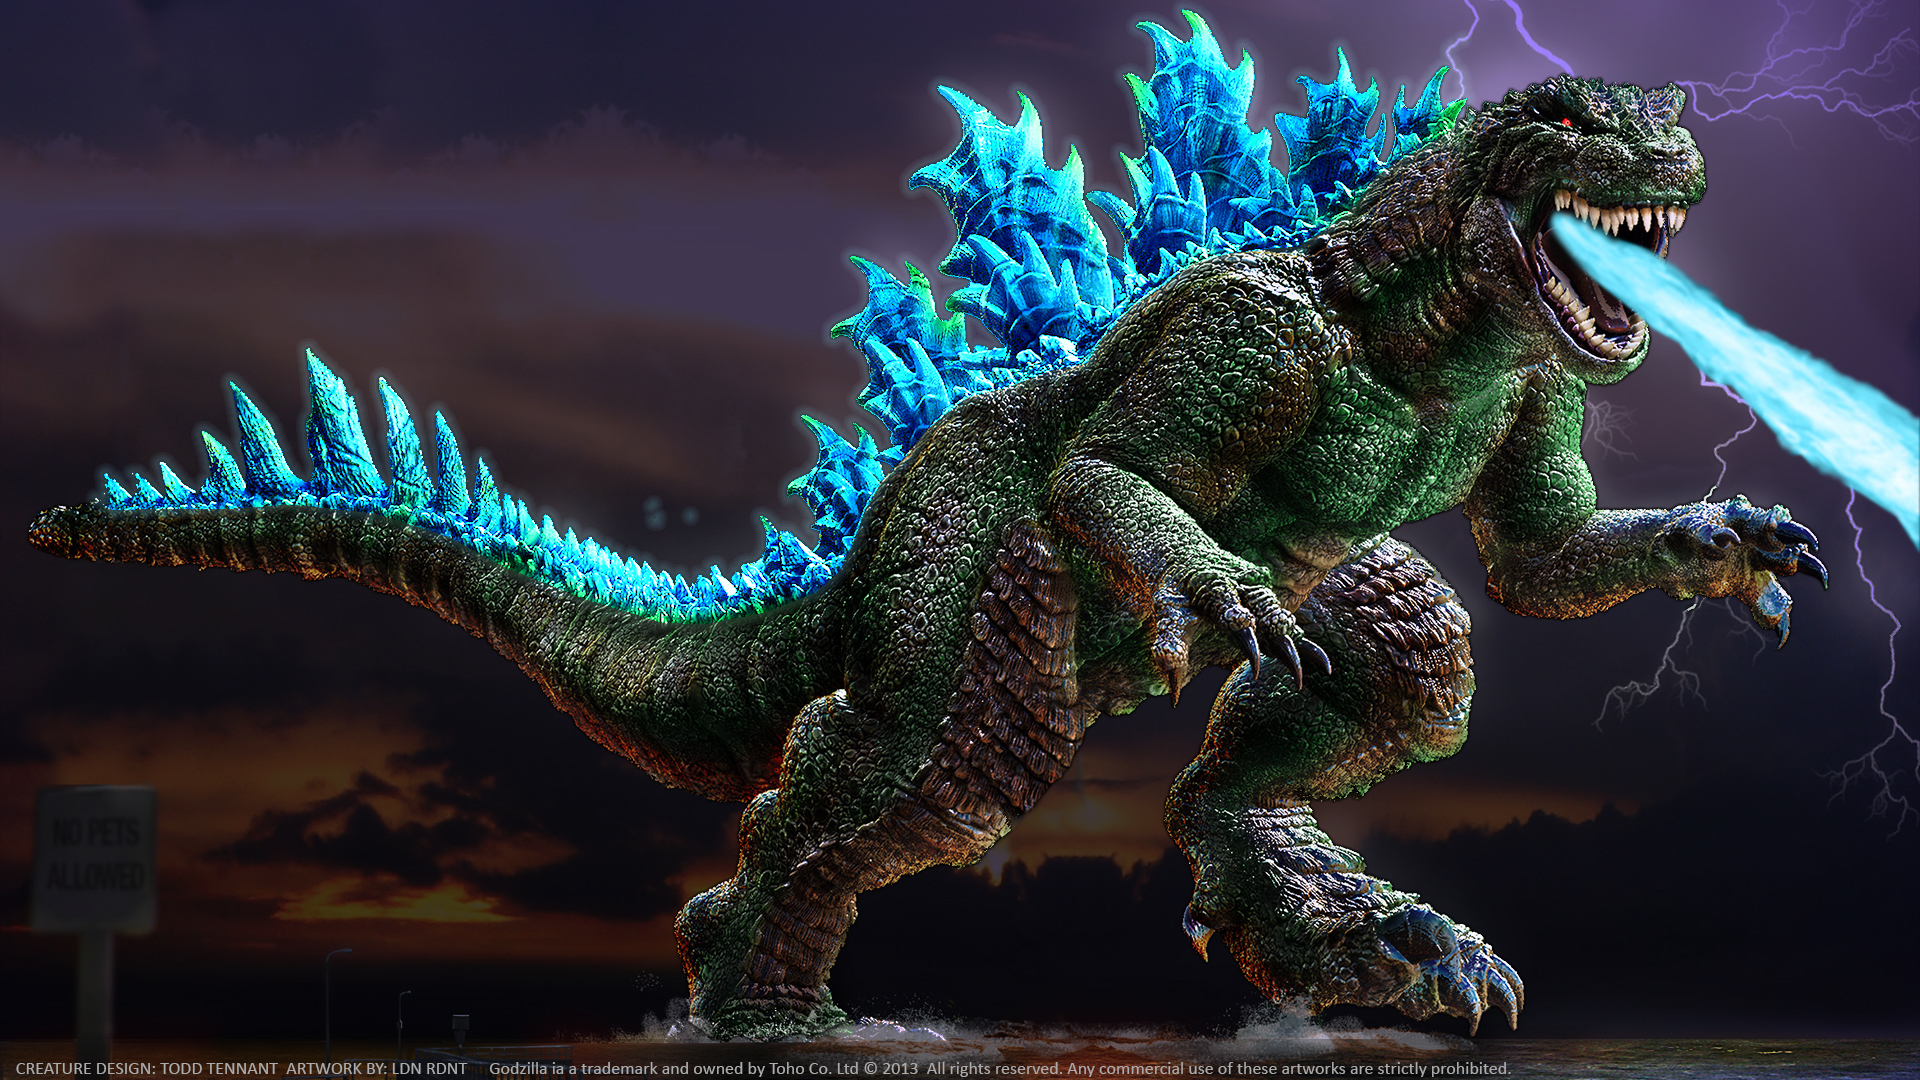 Godzilla wallpapers and images   wallpapers pictures photos 1920x1080